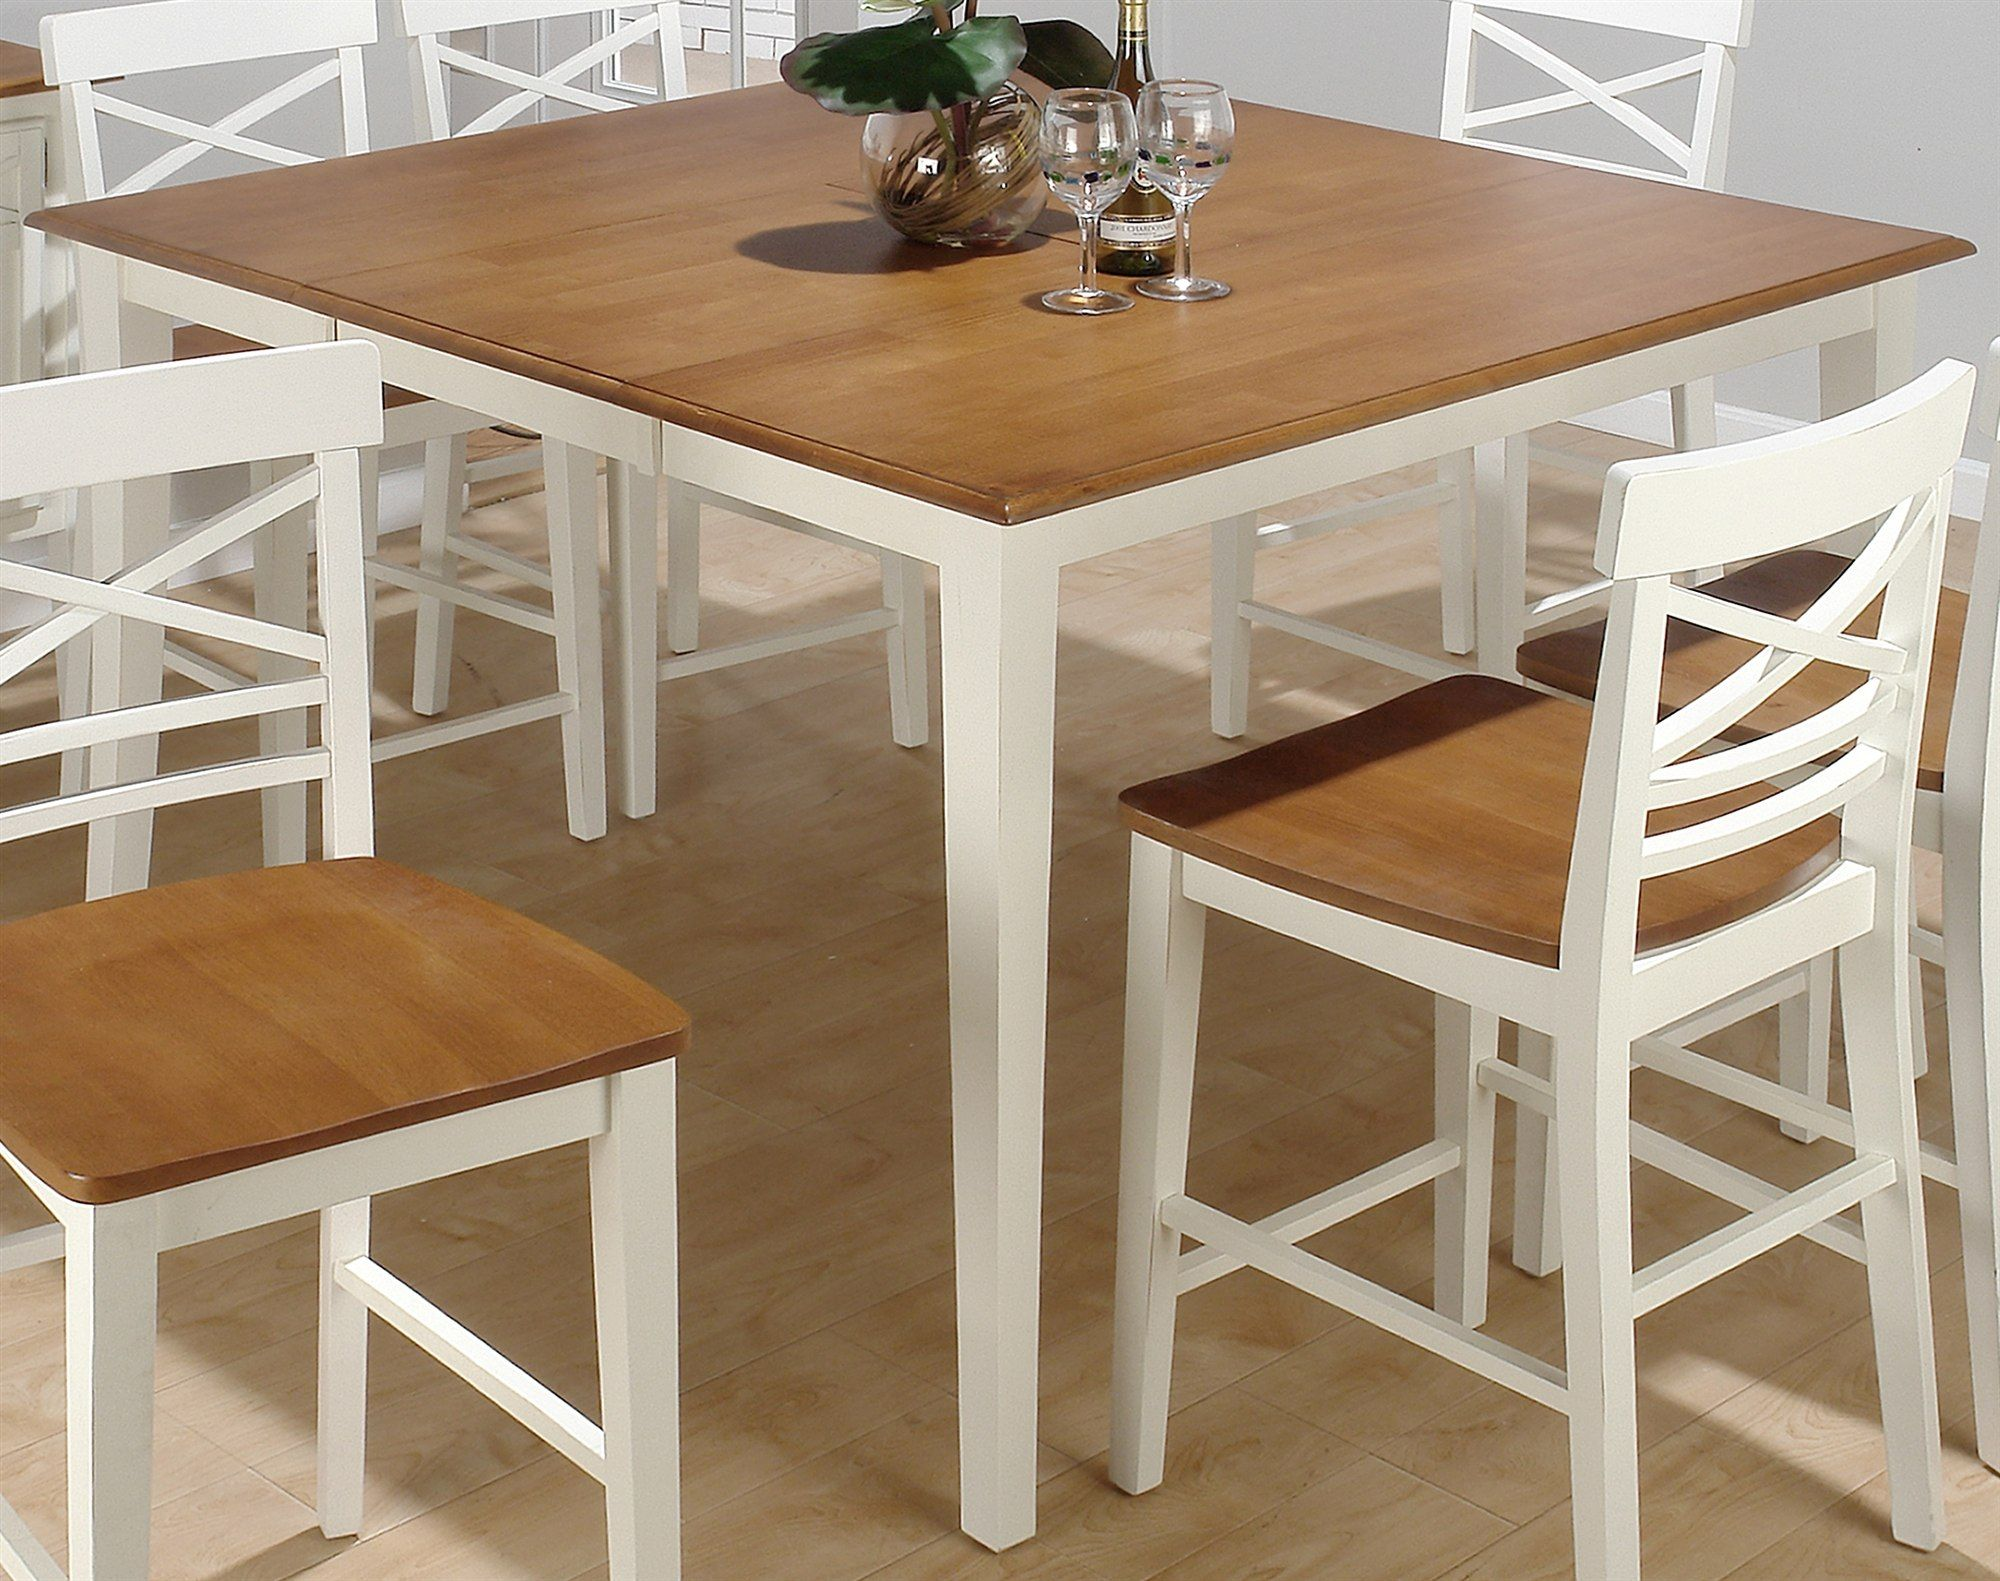 expandable furniture. Interior Inspiration Furniture Surprising Solid Brown Square Expandable Dining Table White Woods Legs And Cool Glass Vase For Awesome Exotic